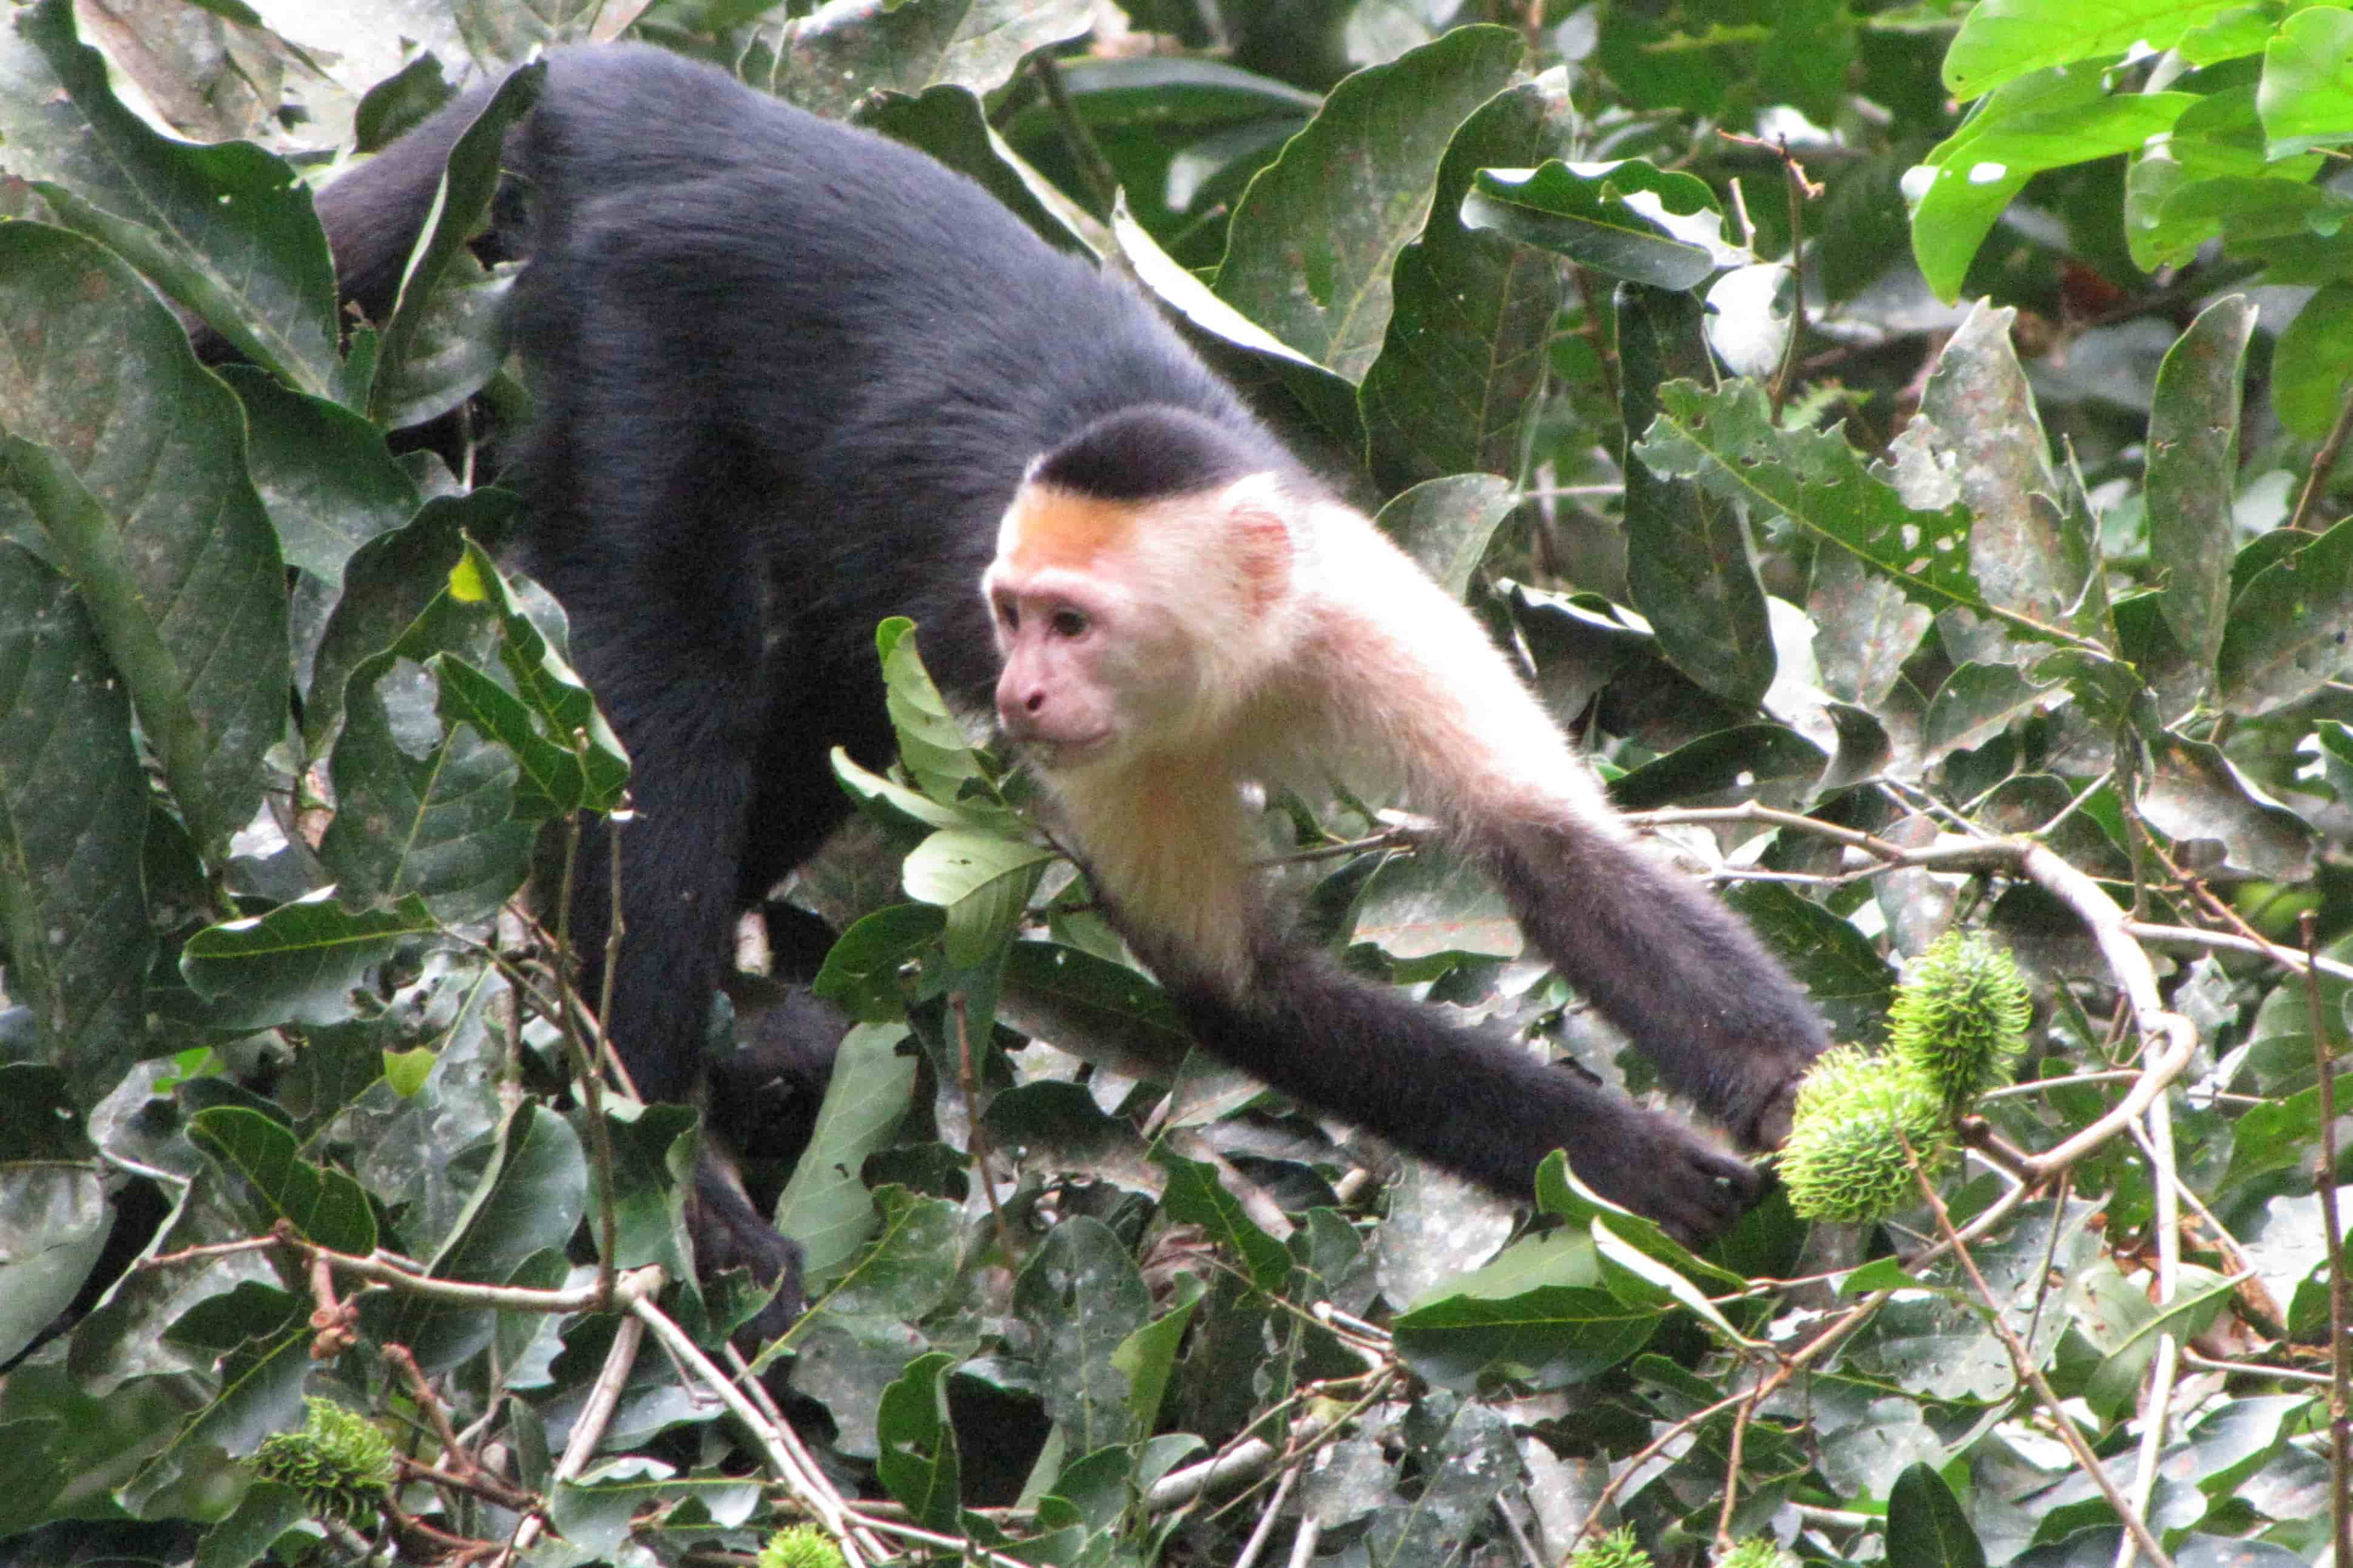 This Capuchin monkey is an example of the species that SLU anthropologist Katherine C. MacKinnon, Ph.D. studies.